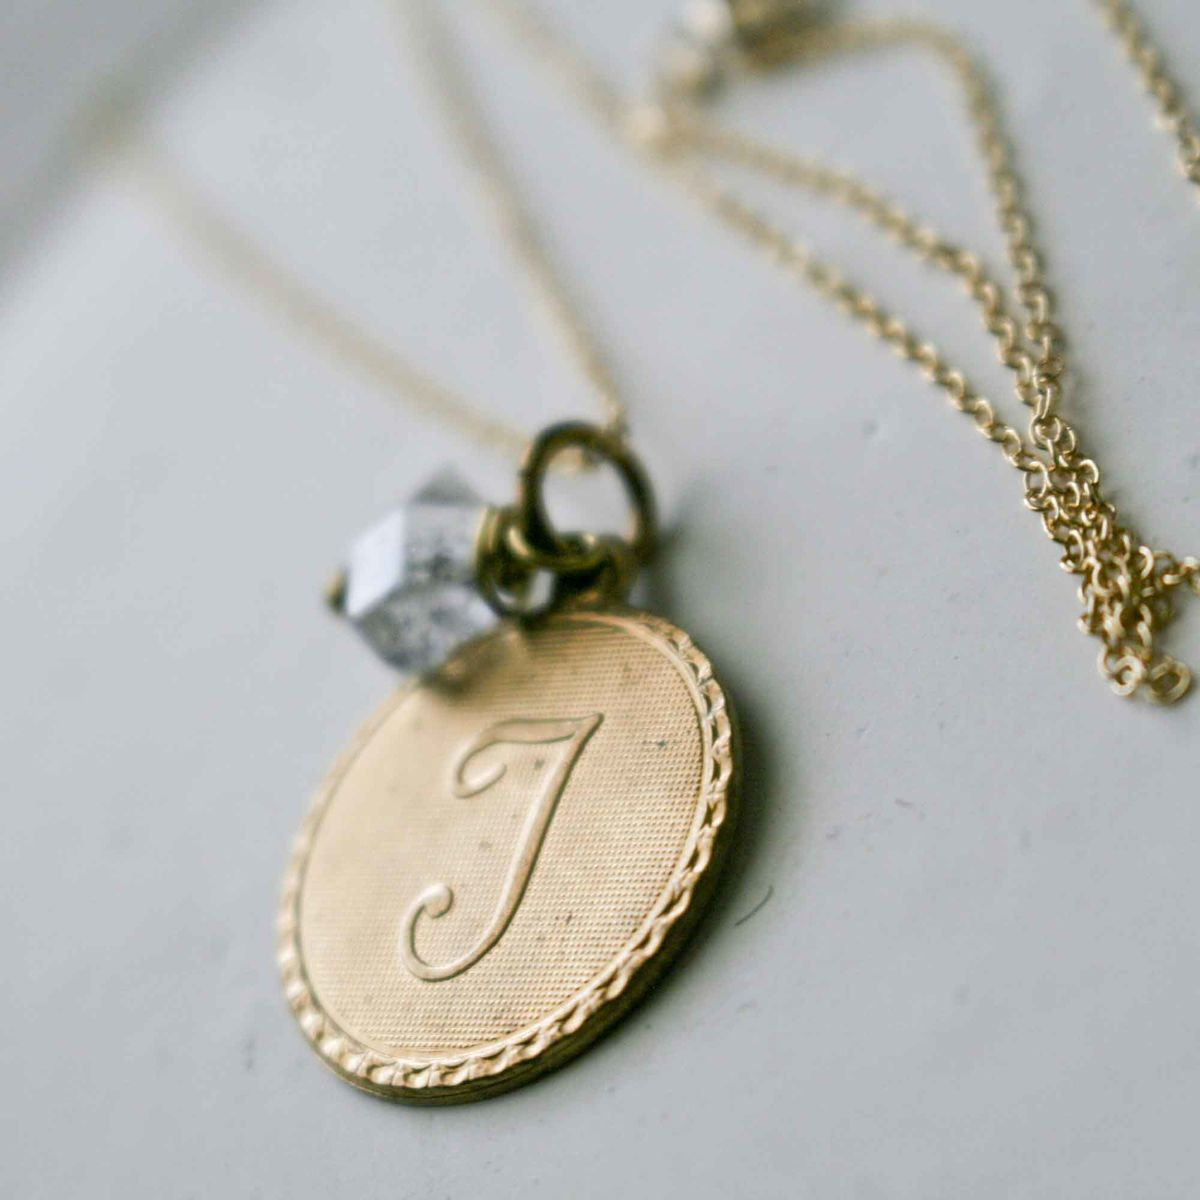 Uppercase Cursive Initial Monogram Letter Round Disc Charm Necklace Within 2020 Letter E Alphabet Locket Element Necklaces (View 23 of 25)